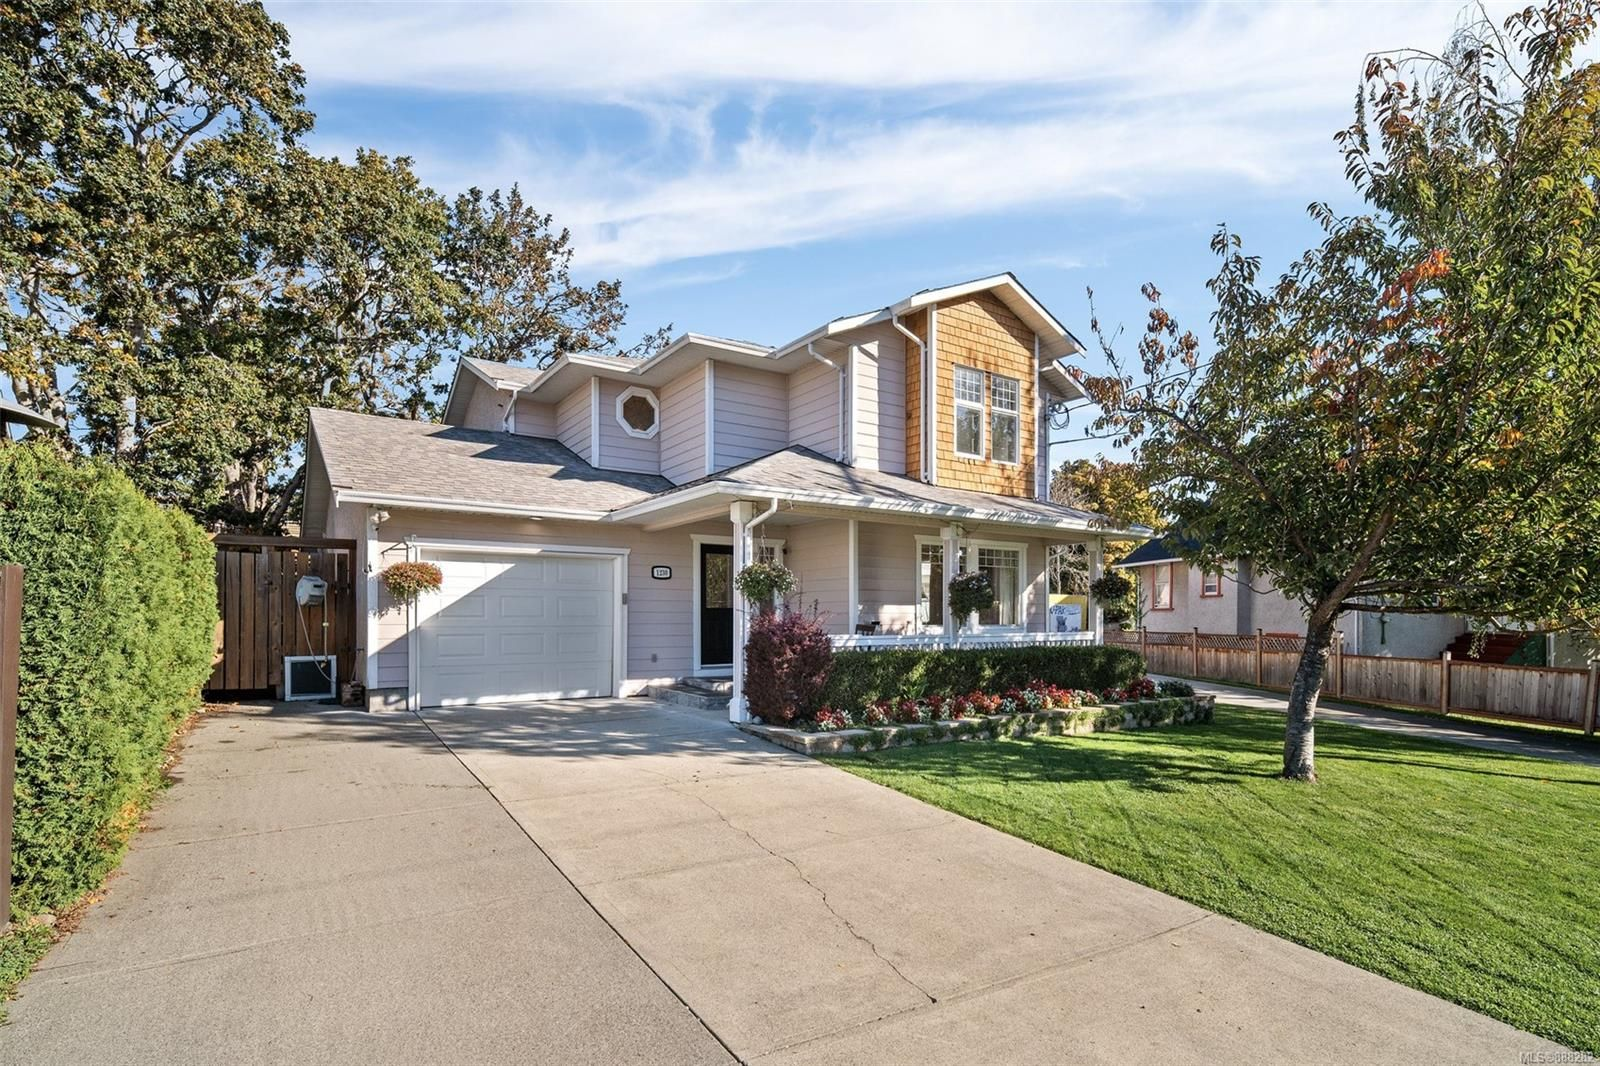 Private 3 bed 3 bath home. Manicured, irrigated gardens. gardens